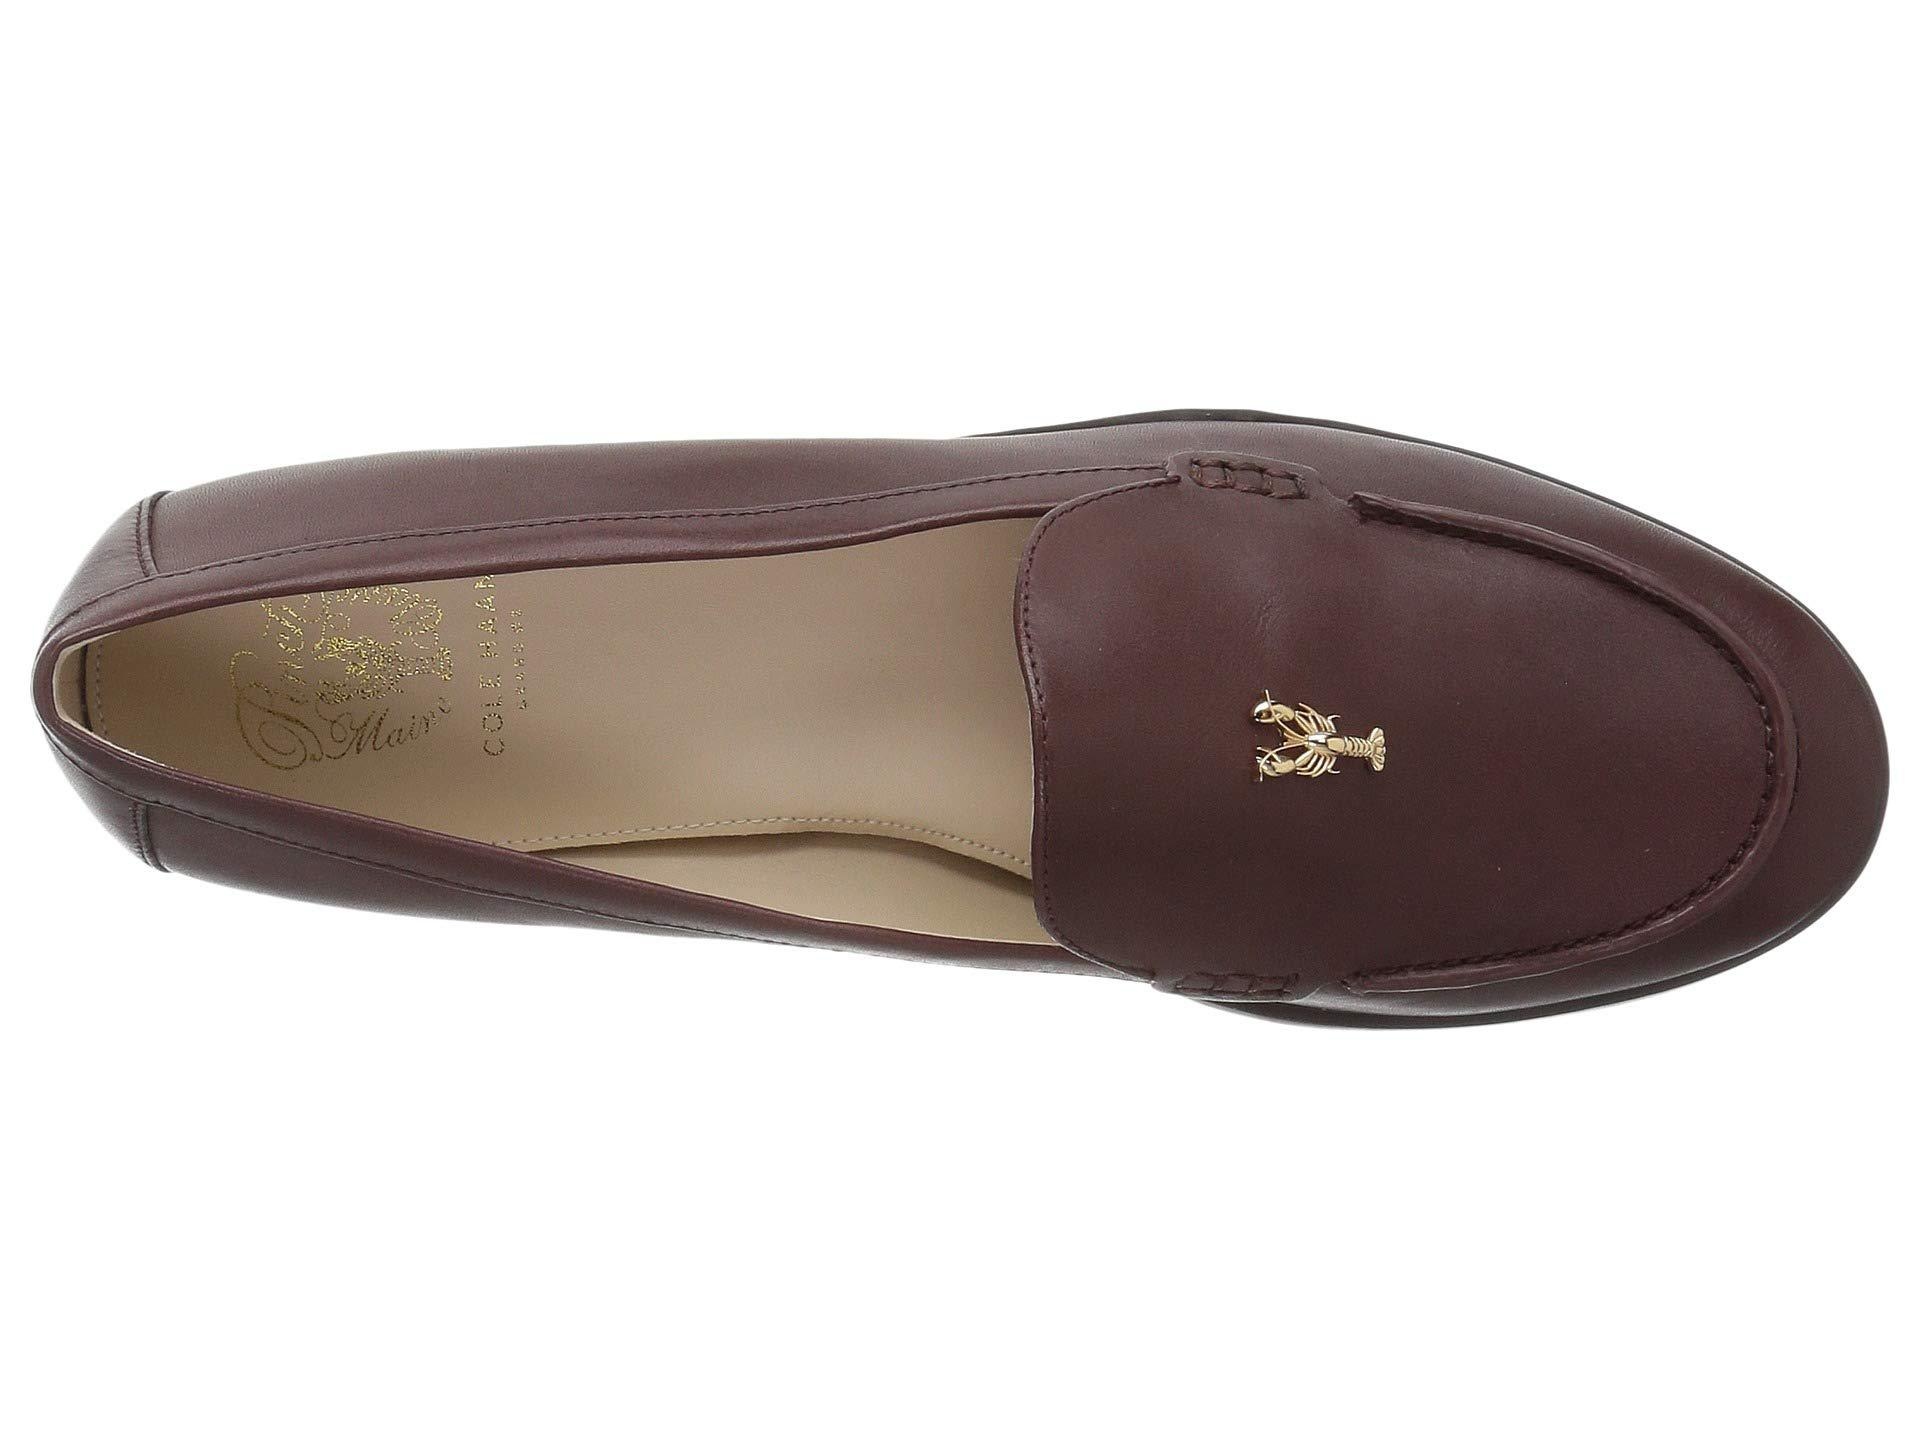 399be52ab01 Lyst - Cole Haan Pinch Lobster Loafer (cordovan Leather) Women s ...